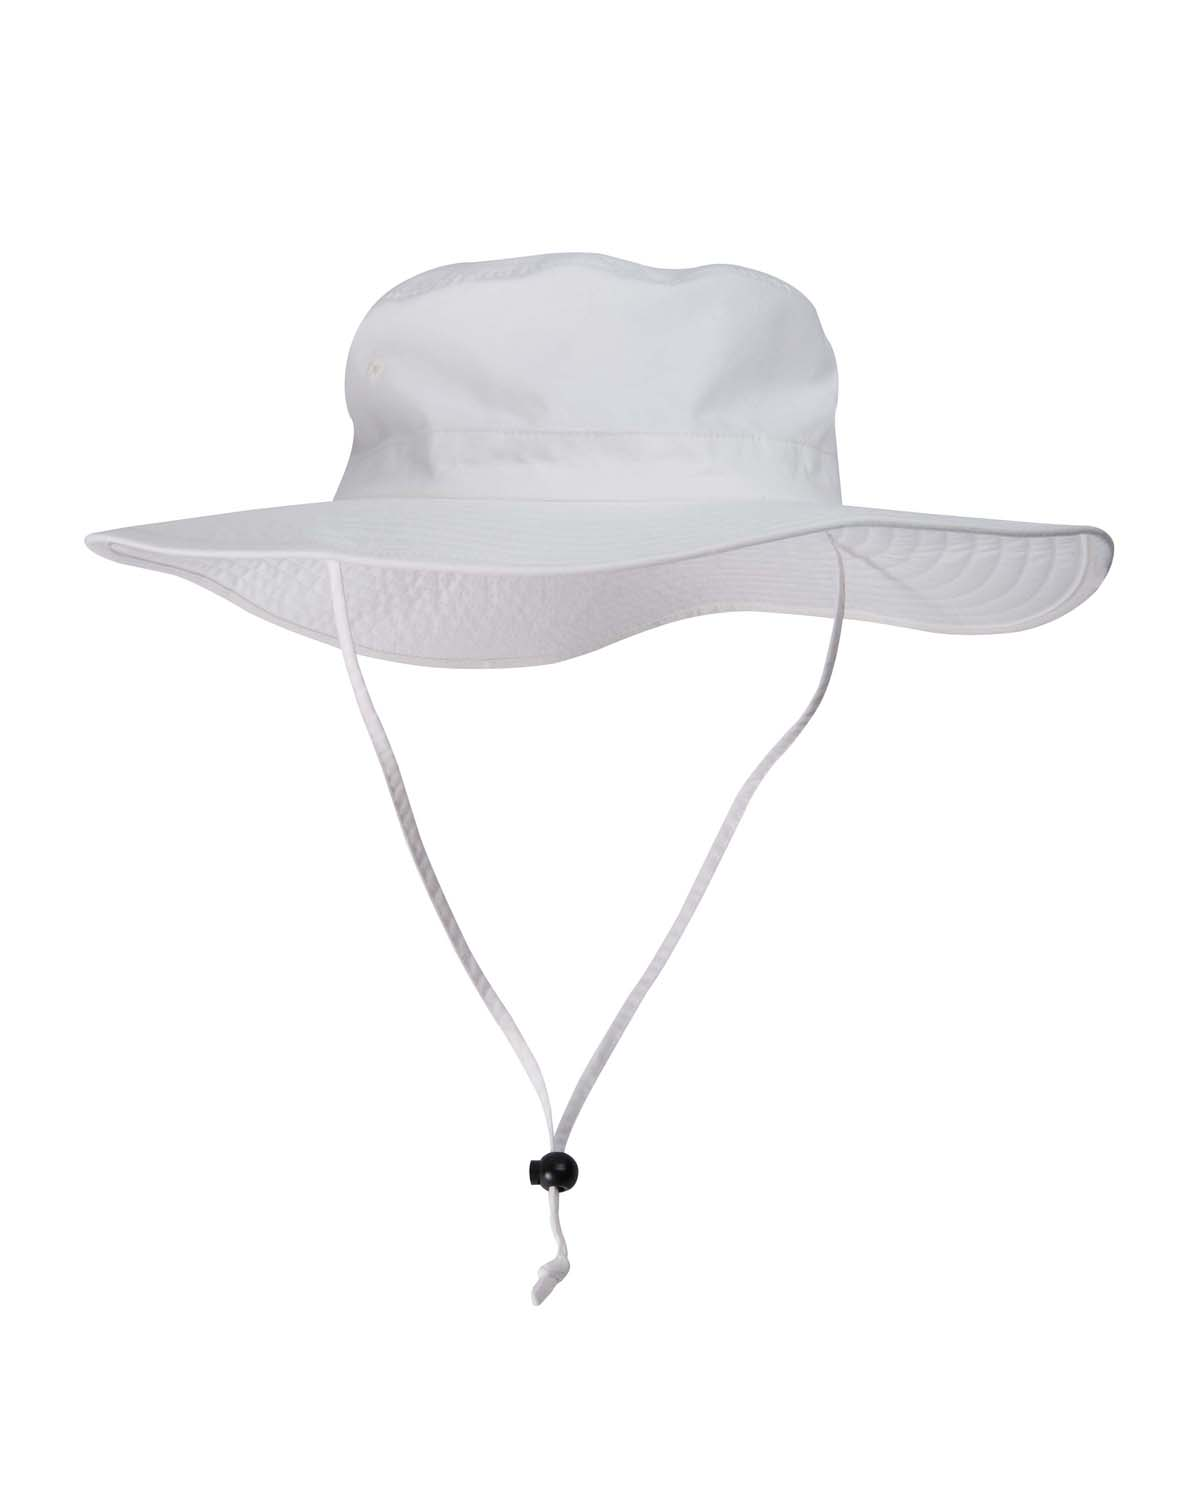 ddf31eabd7c Custom Bucket Hats - Design Online with RushOrderTees®